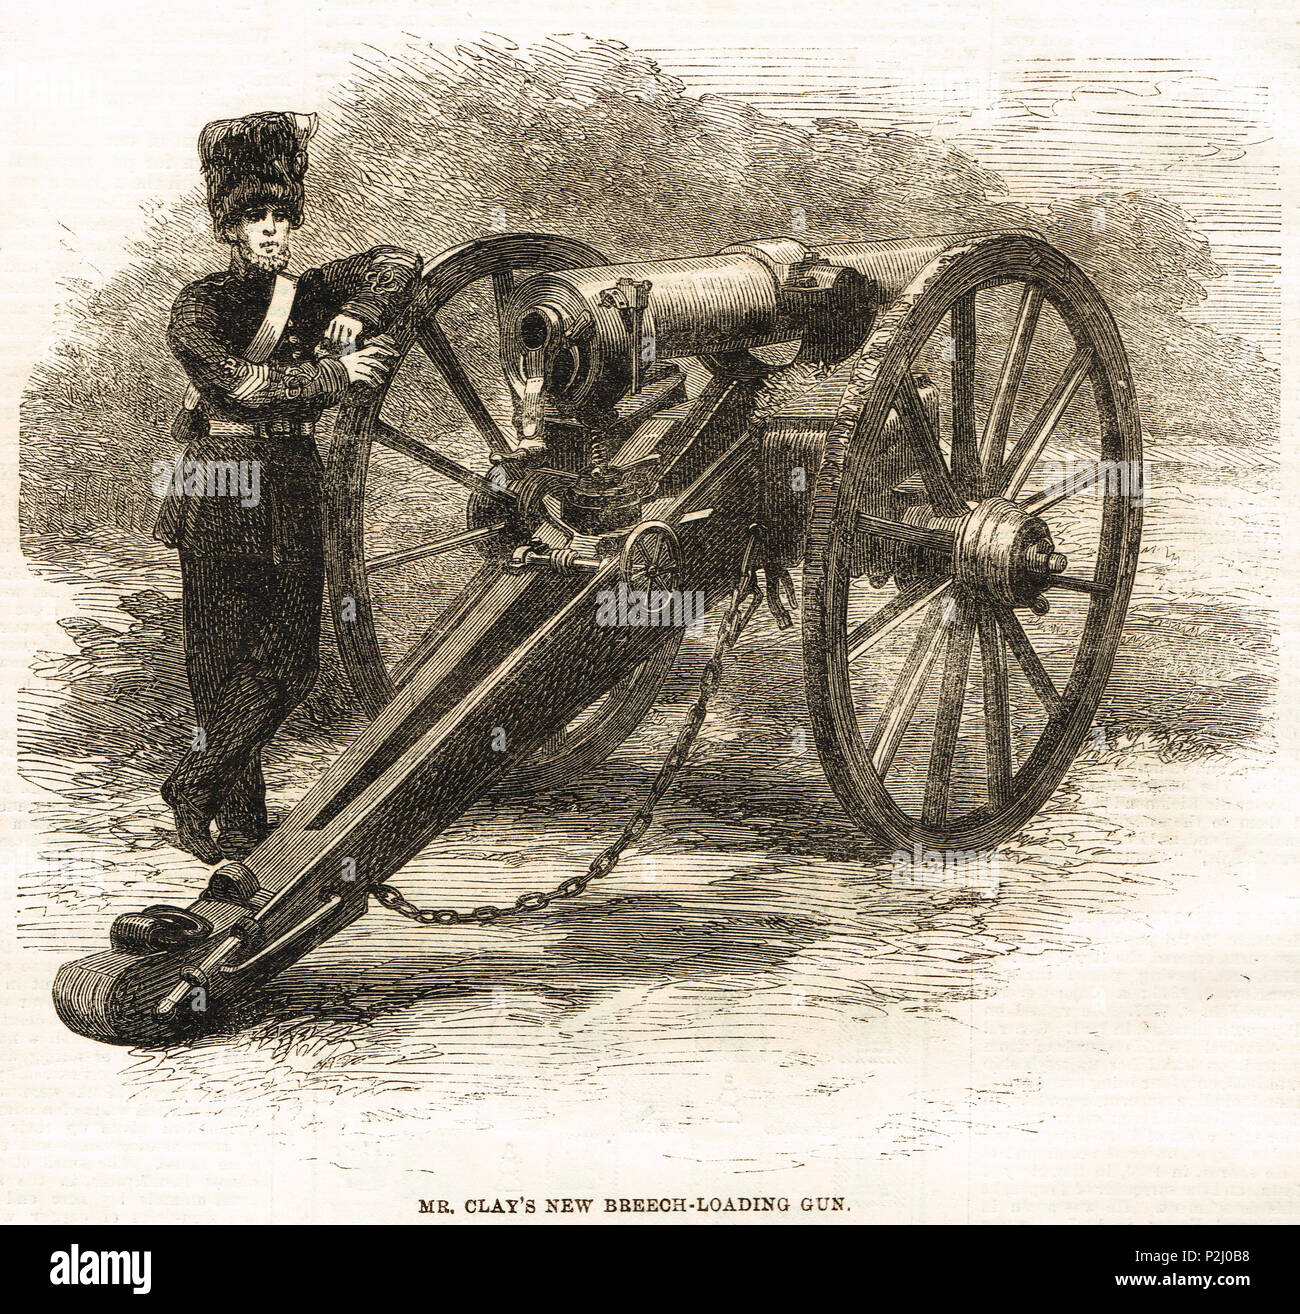 William Clay breech-loading field gun, 1862 - Stock Image